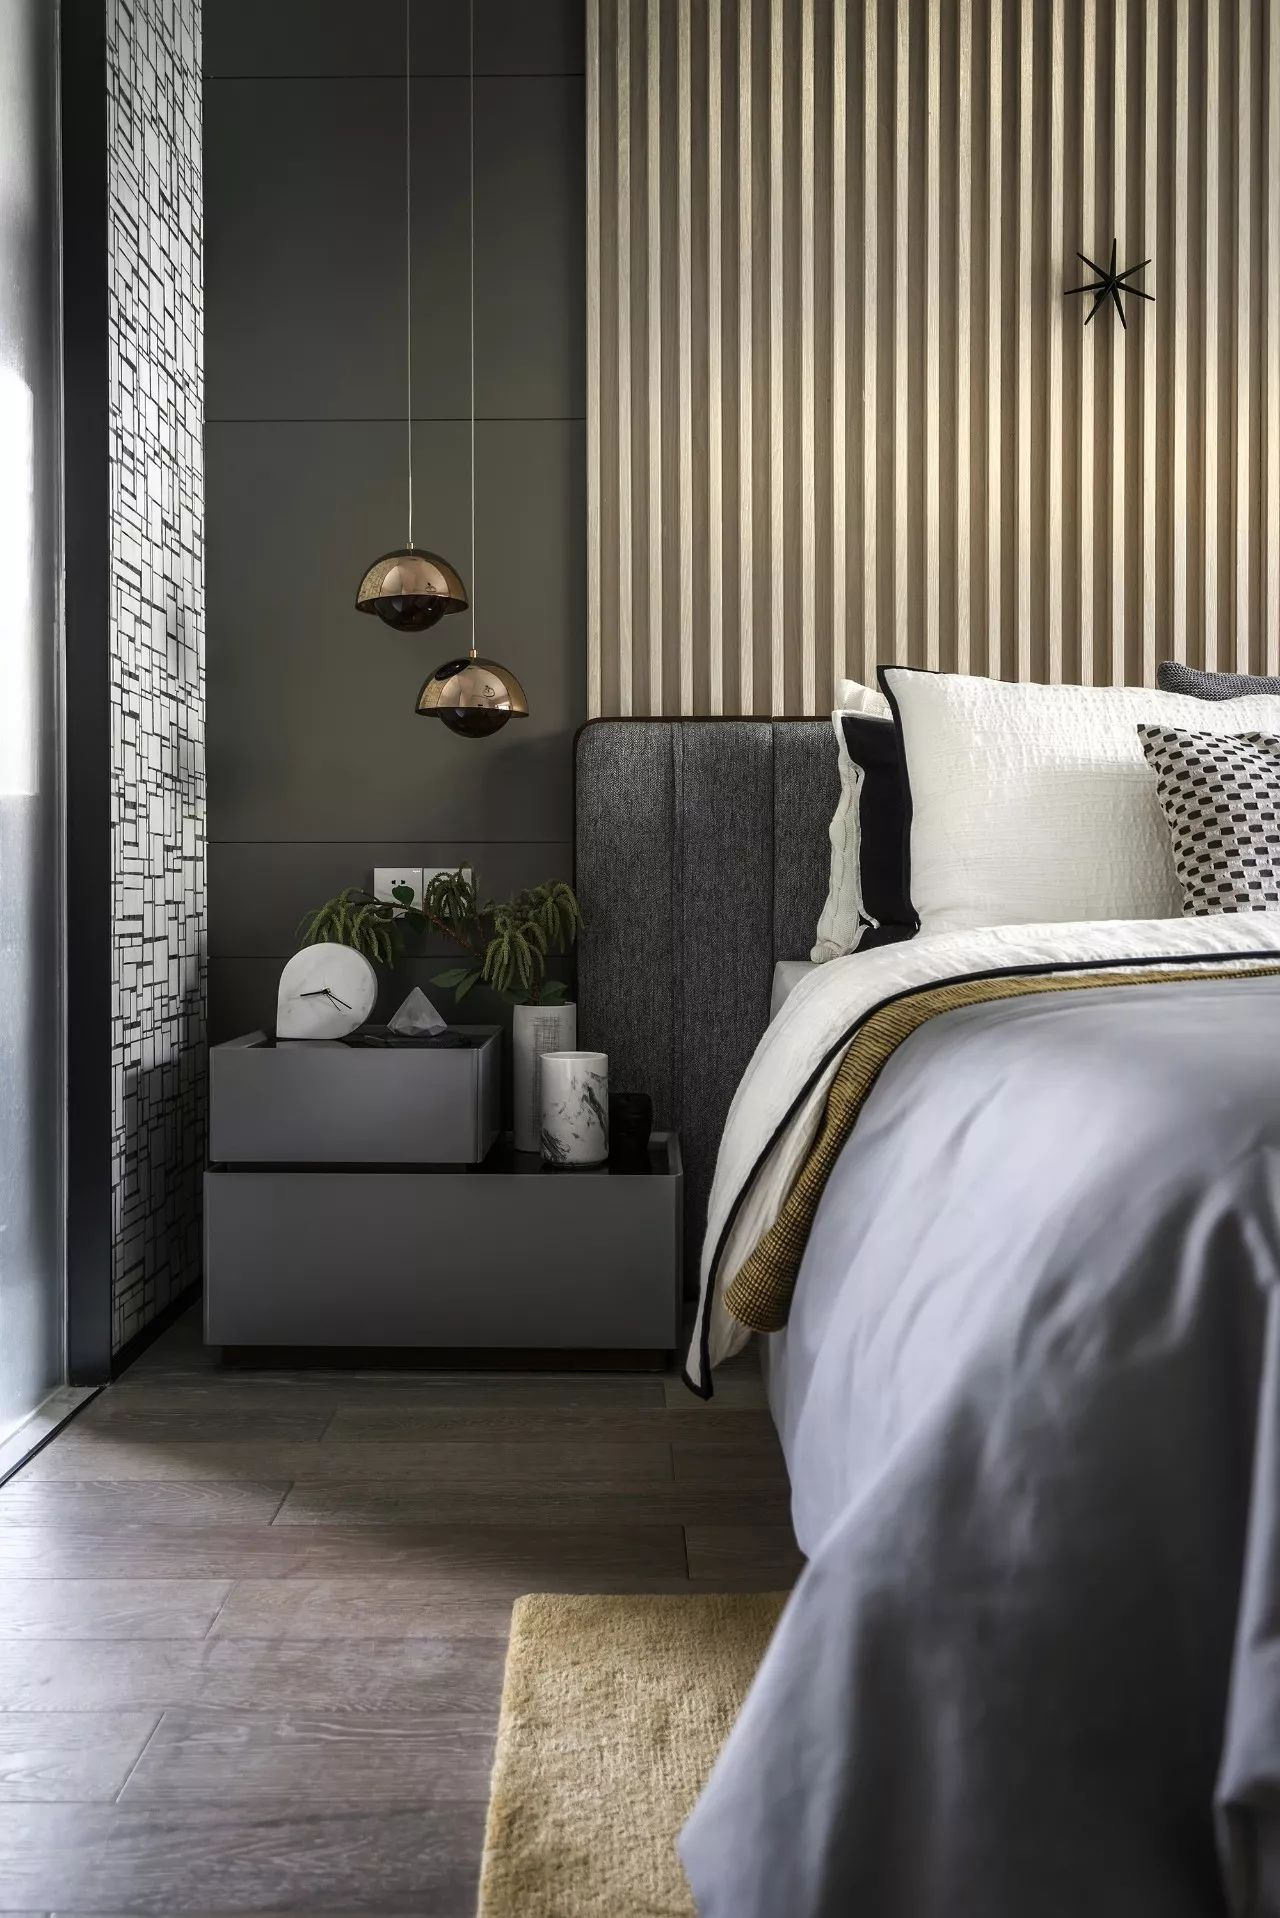 bedroom design inspiration image by yu liya on bedroom on modern luxurious bedroom ideas decoration some inspiration to advise you in decorating your room id=92996